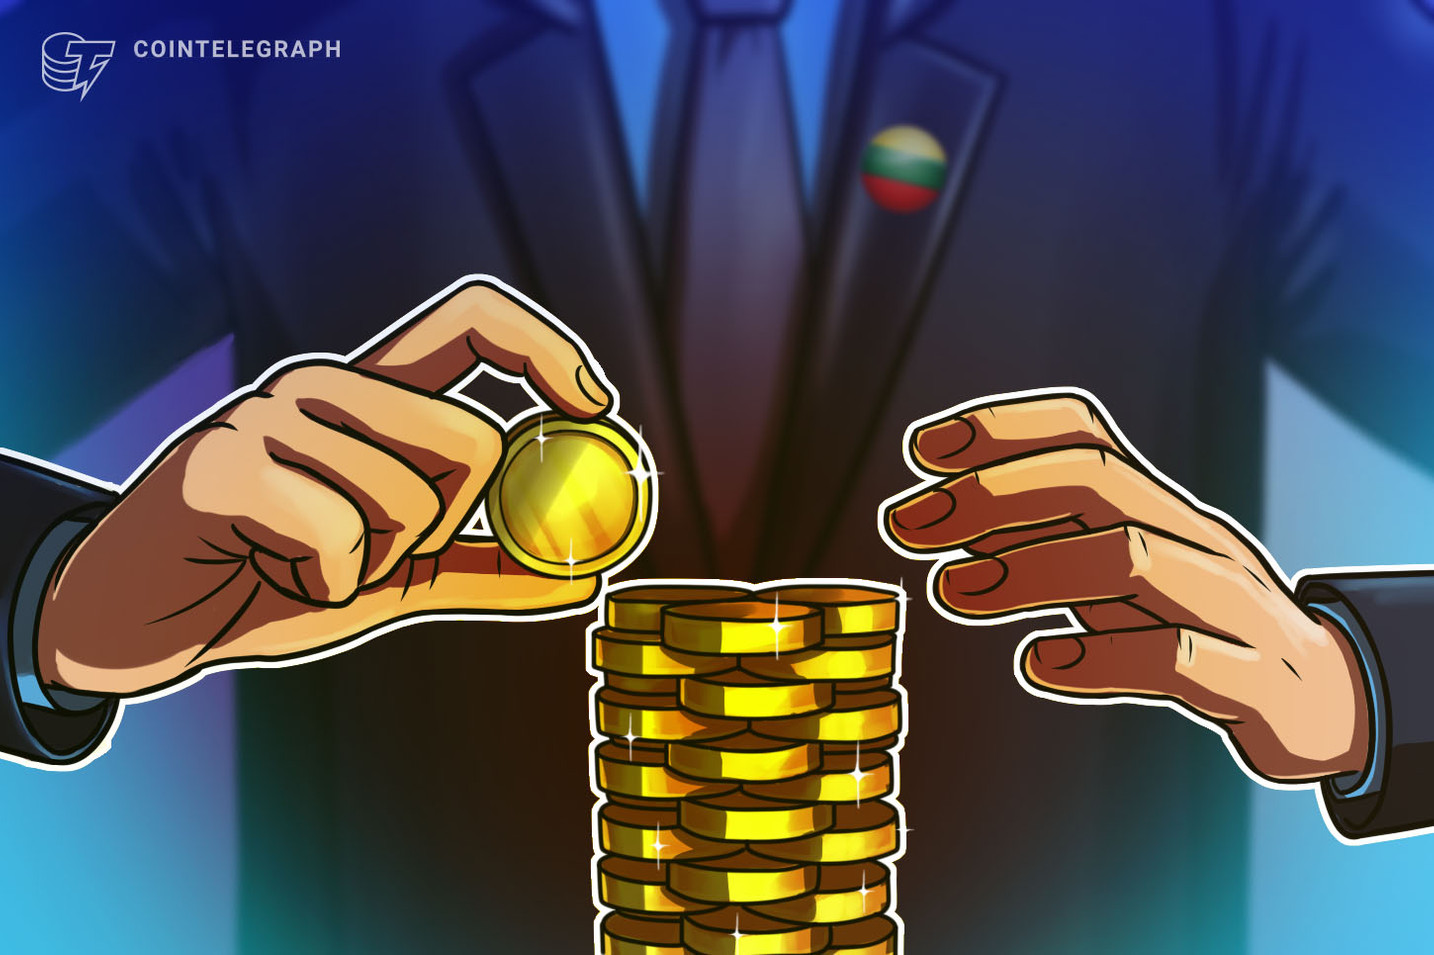 The Bank of Lithuania Released a Cryptocurrency, But It's for Collectors